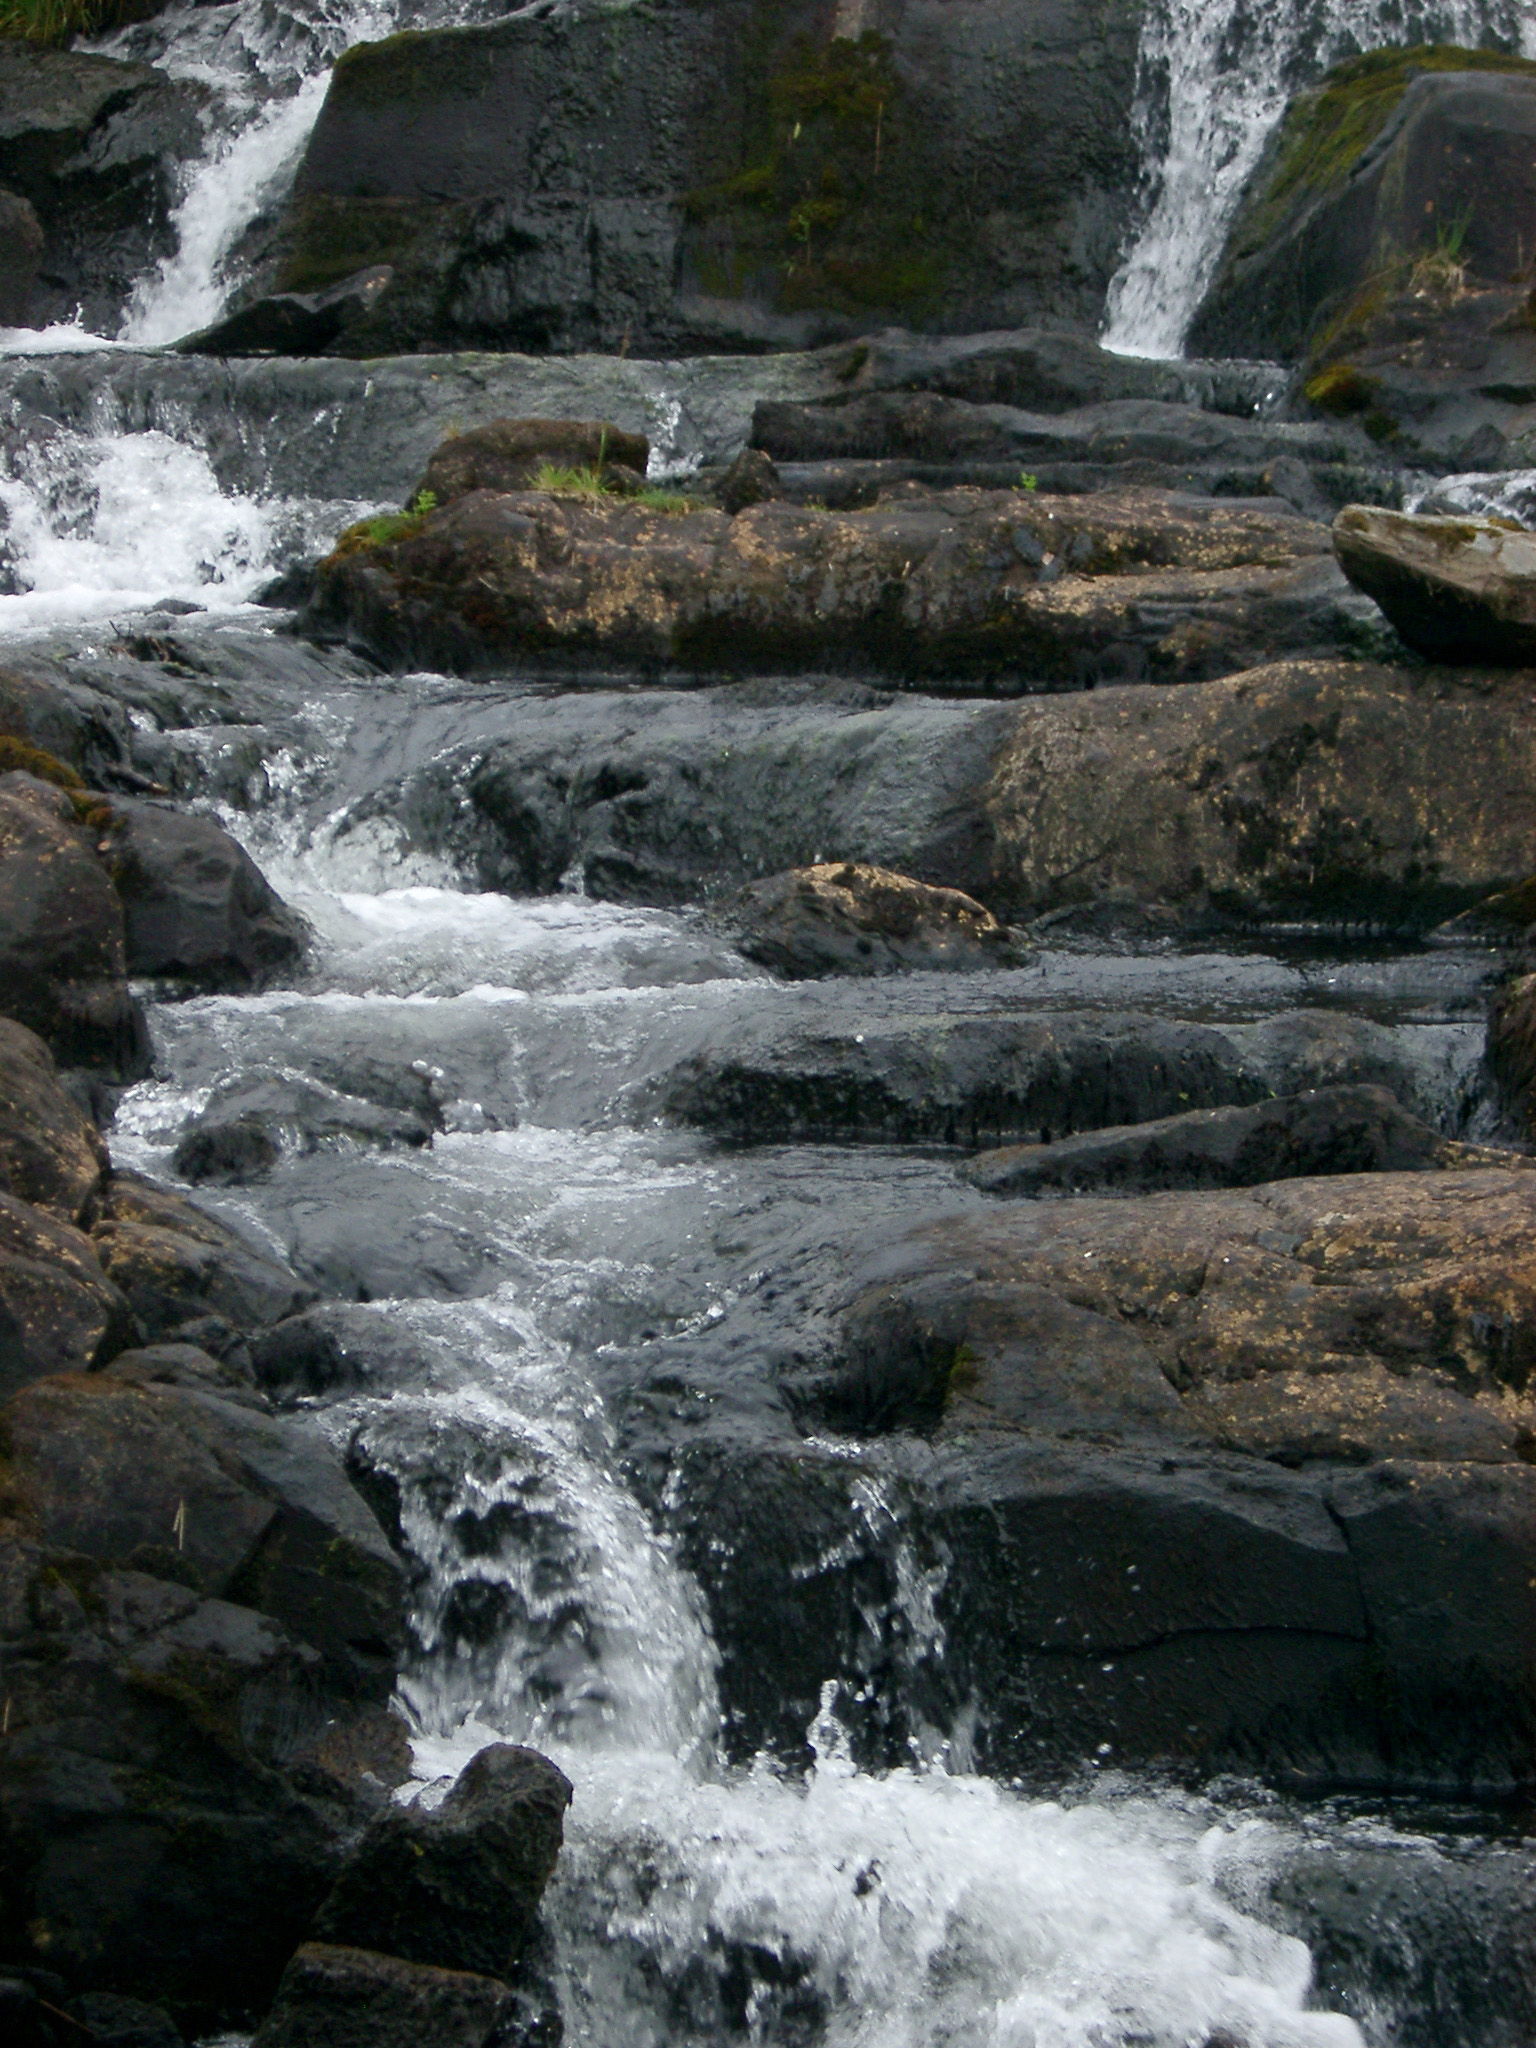 free image of mountain stream flowing over rocks